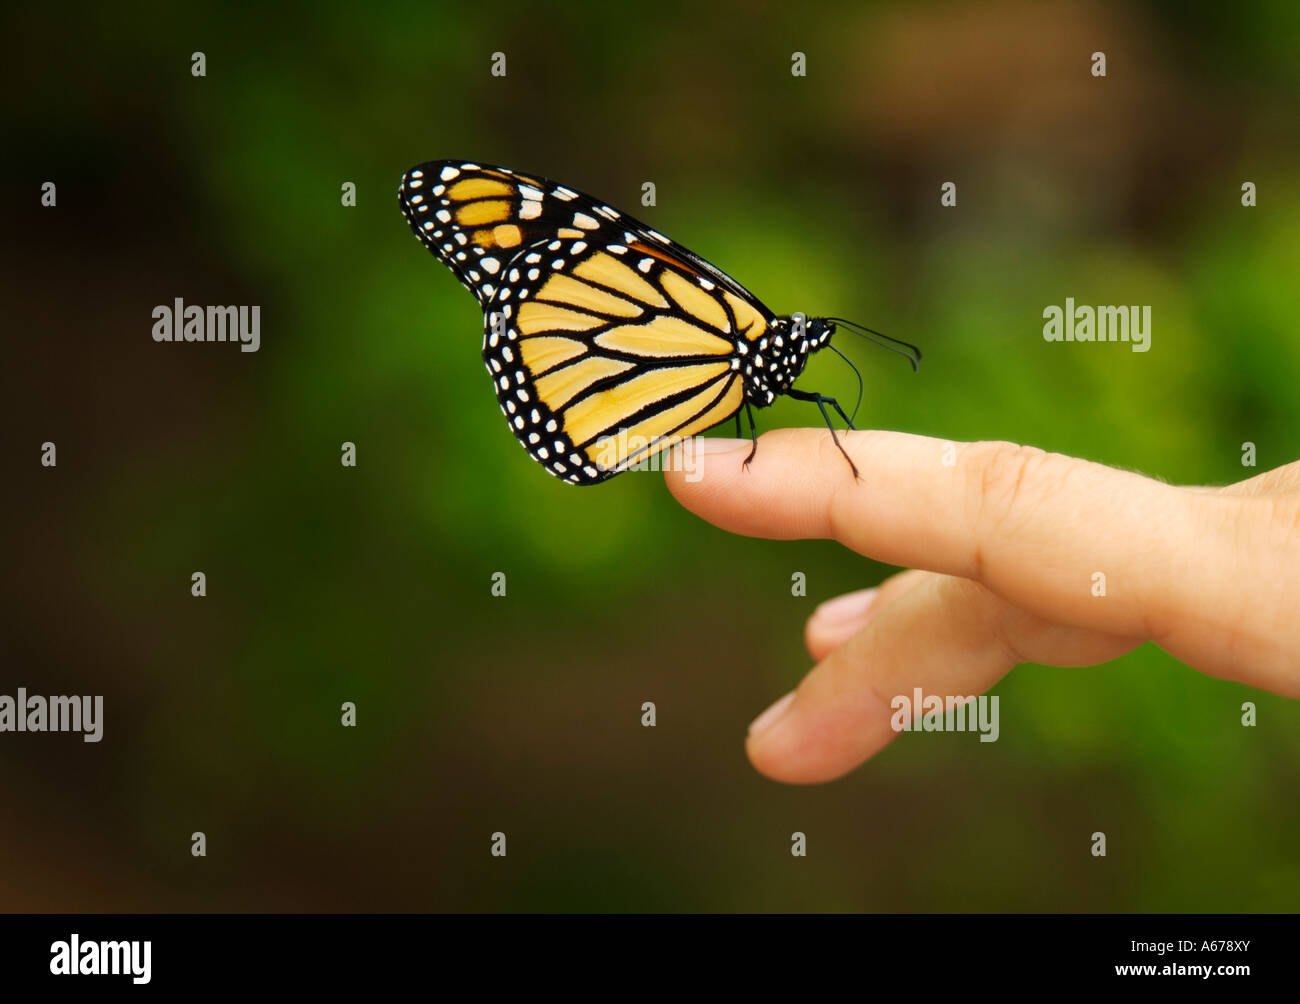 Monarch butterfly on woman's hand - Stock Image